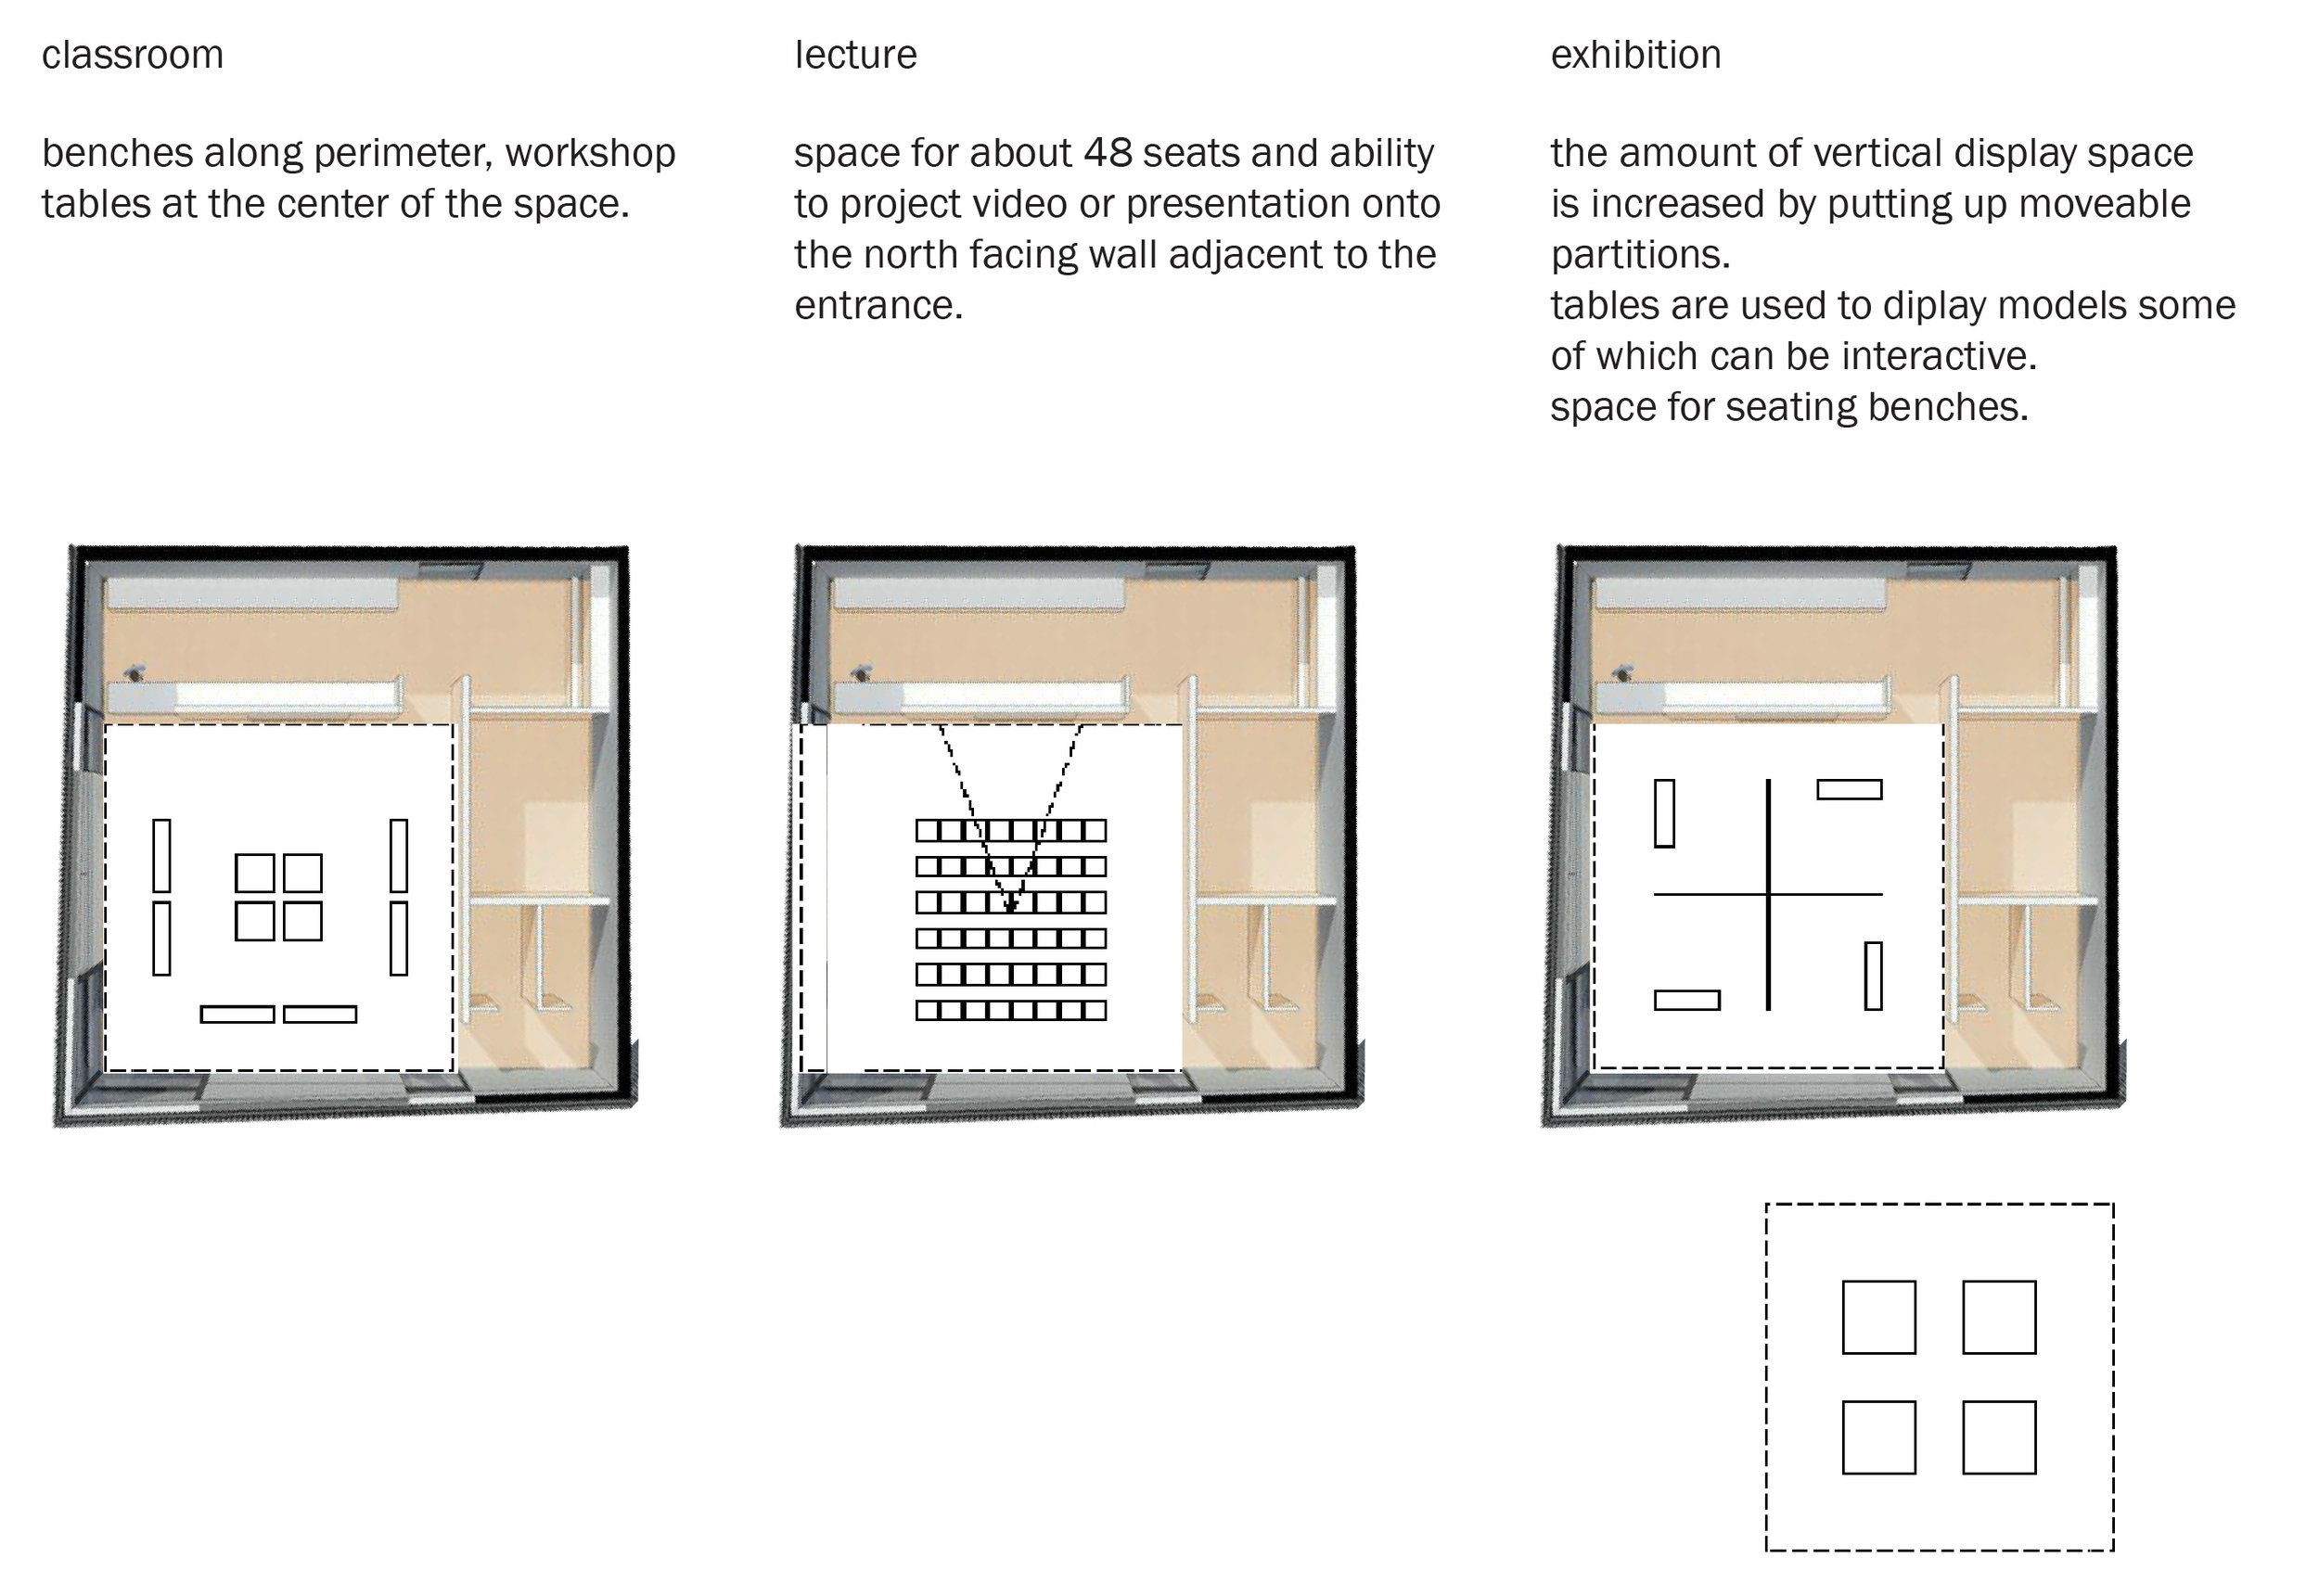 Concept is to have a modular interior that's easy to format for presentations, work groups or gallery style viewing.